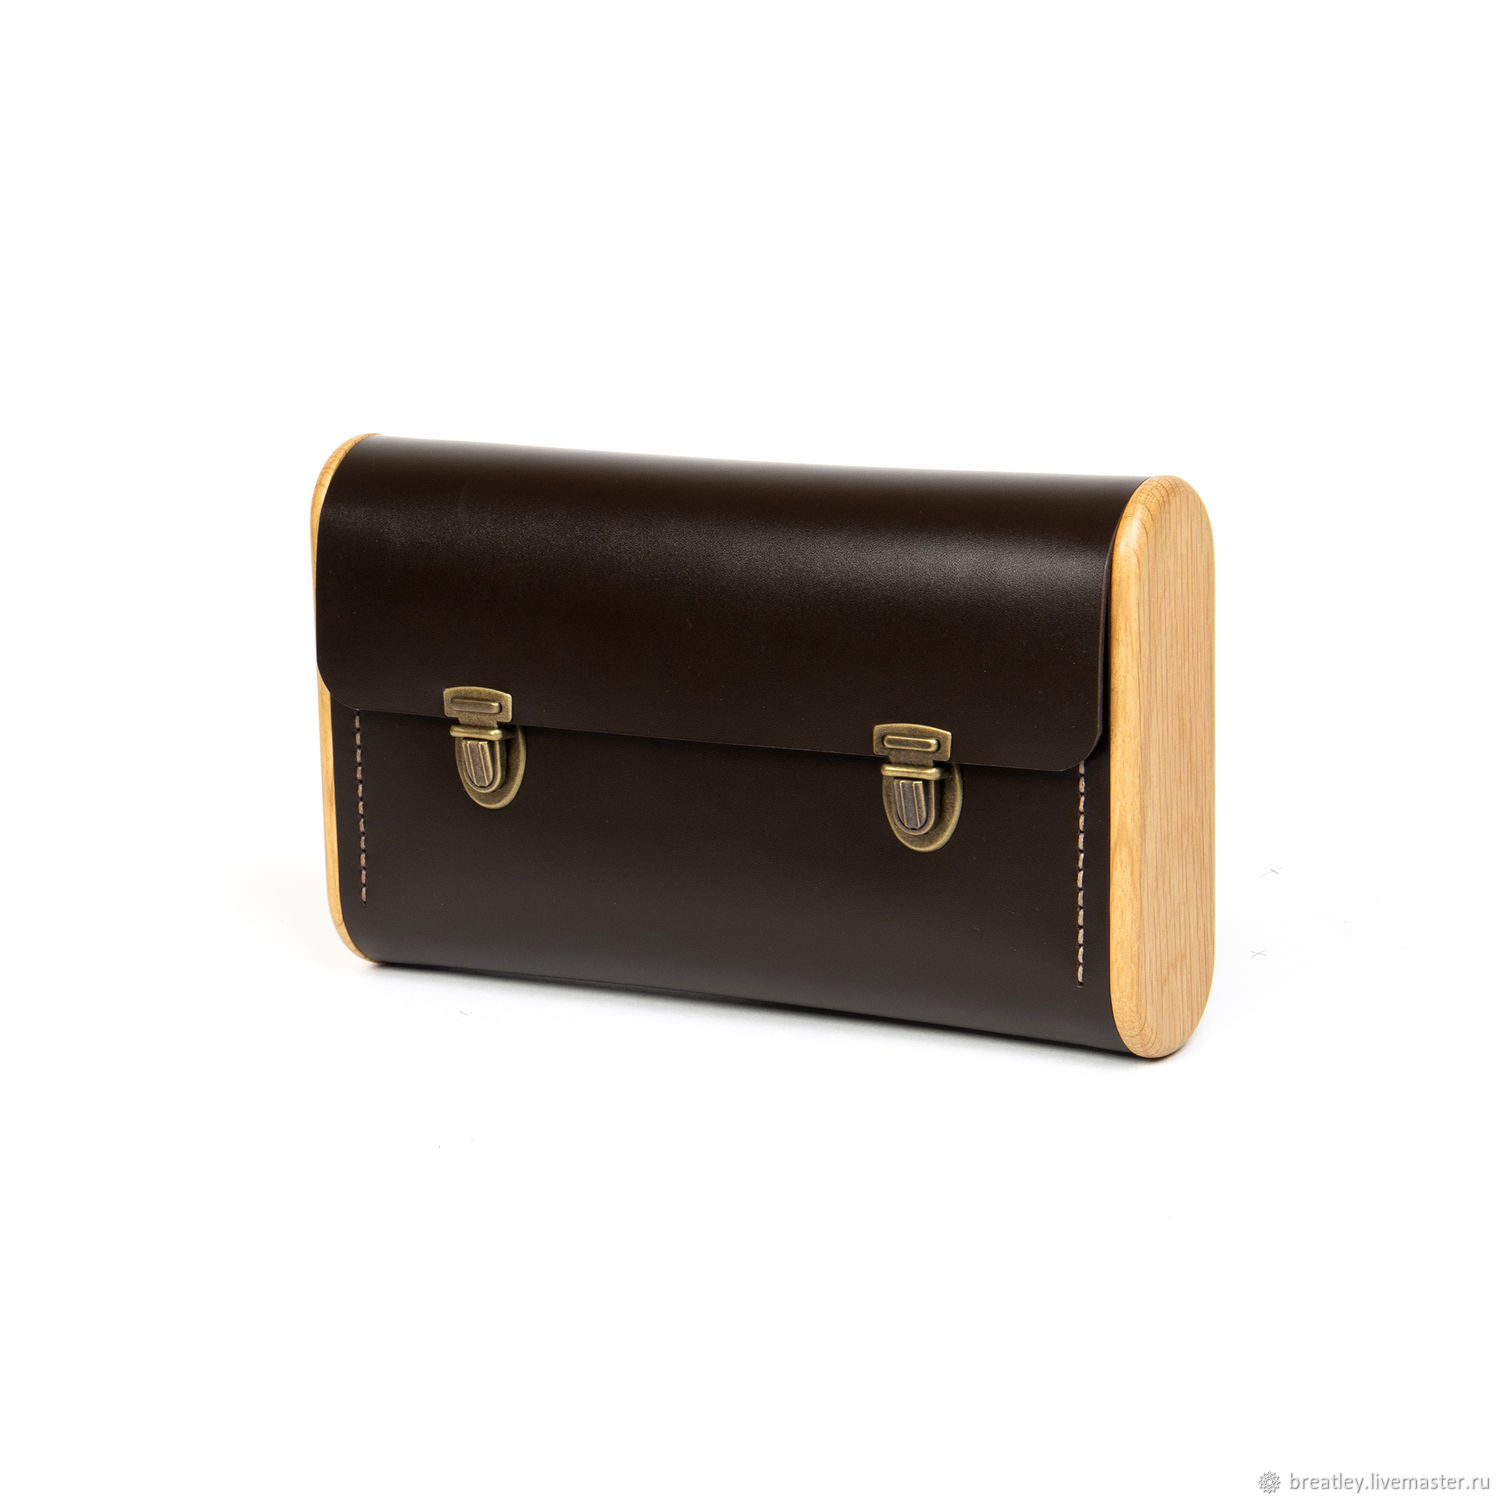 Classic clutch for women DOUBLE REEL dark brown, Clutches, Moscow,  Фото №1